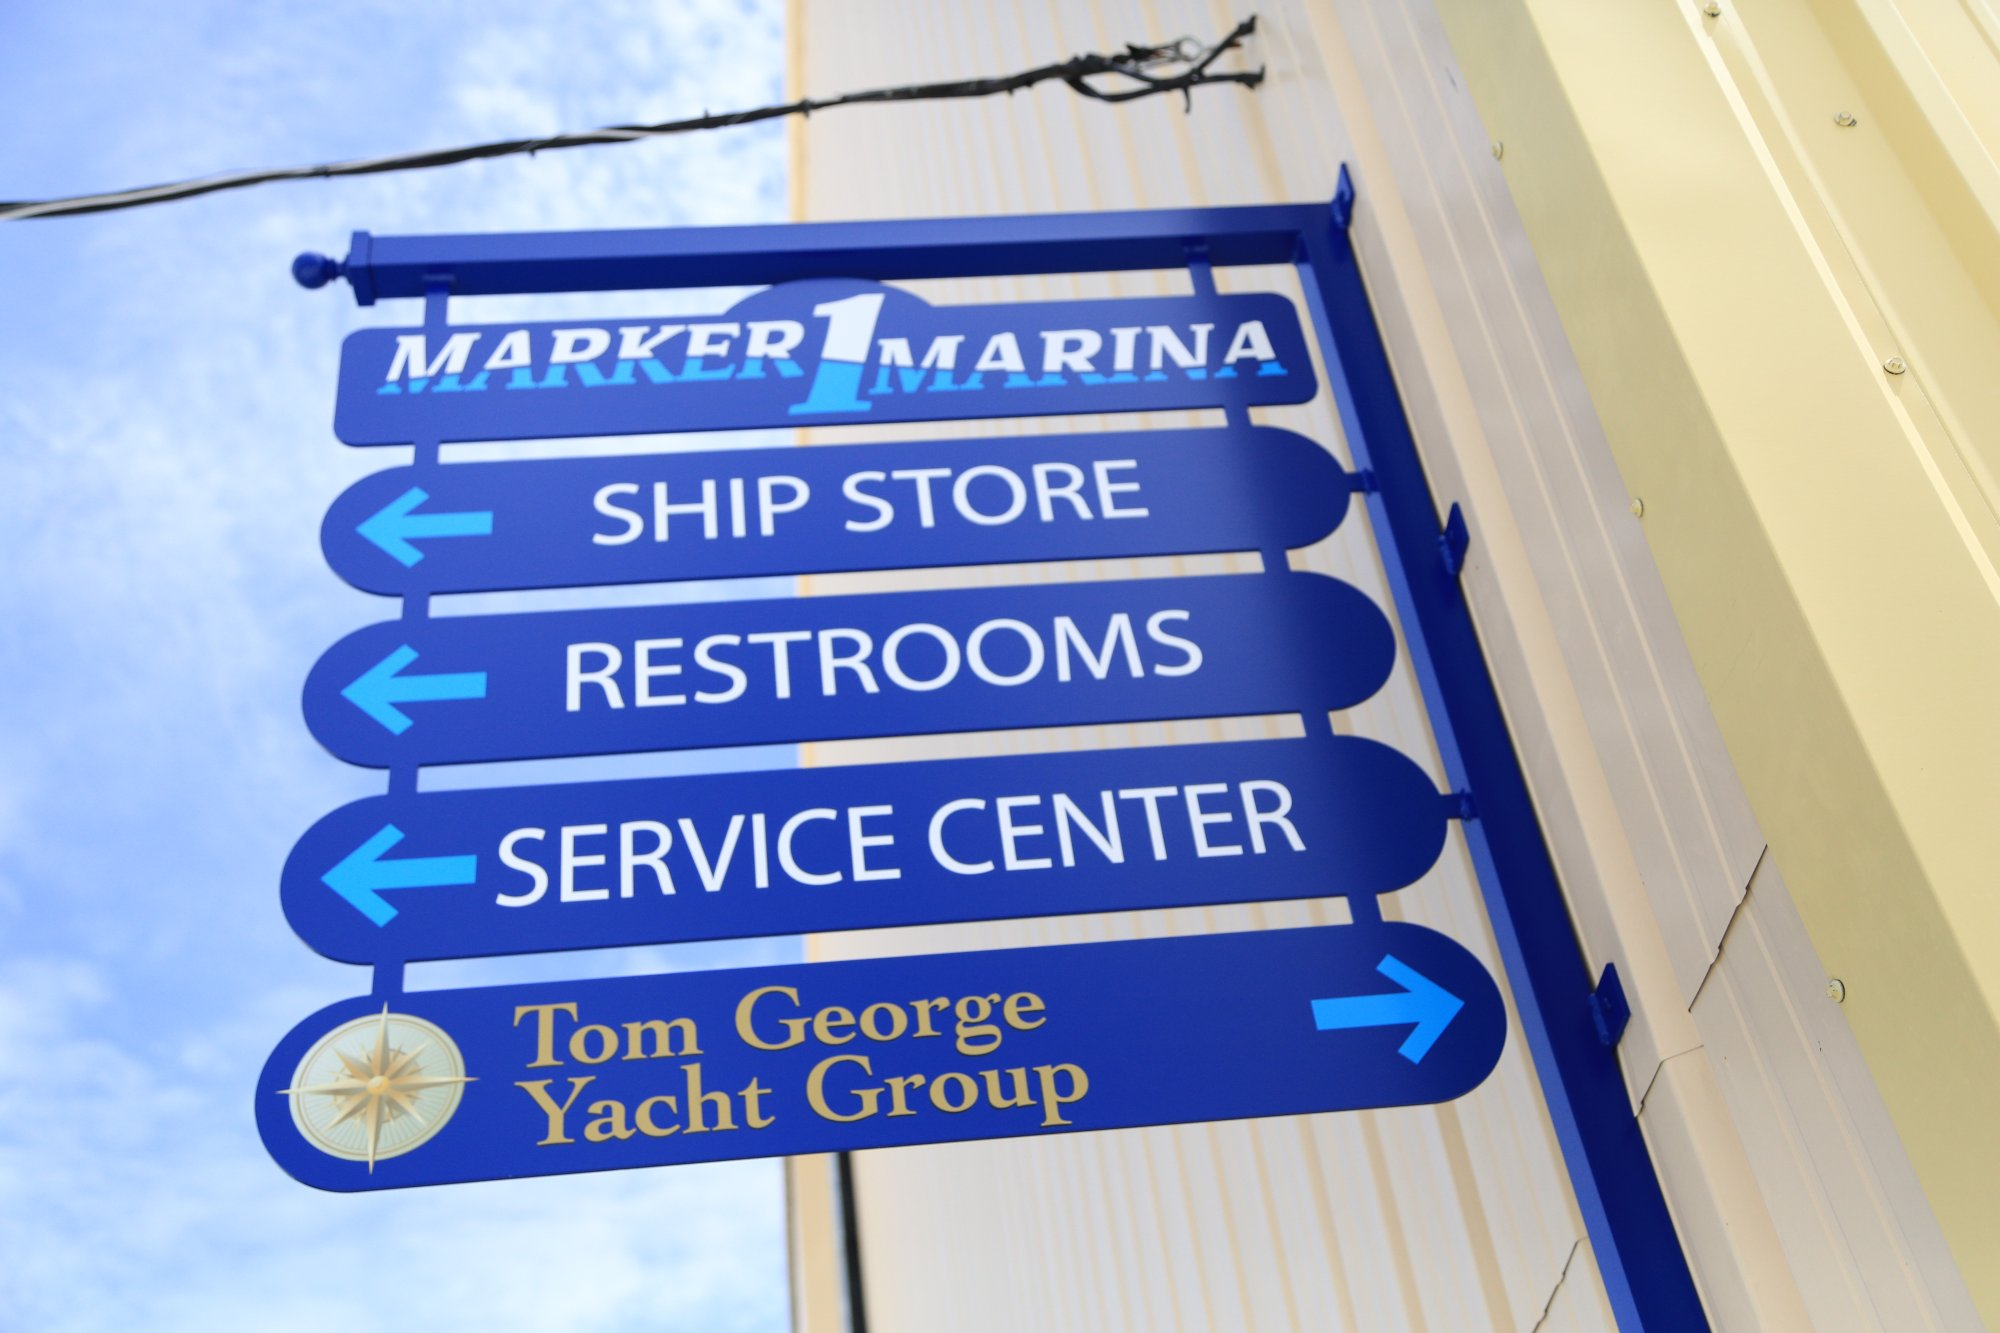 Tom George Marina signage